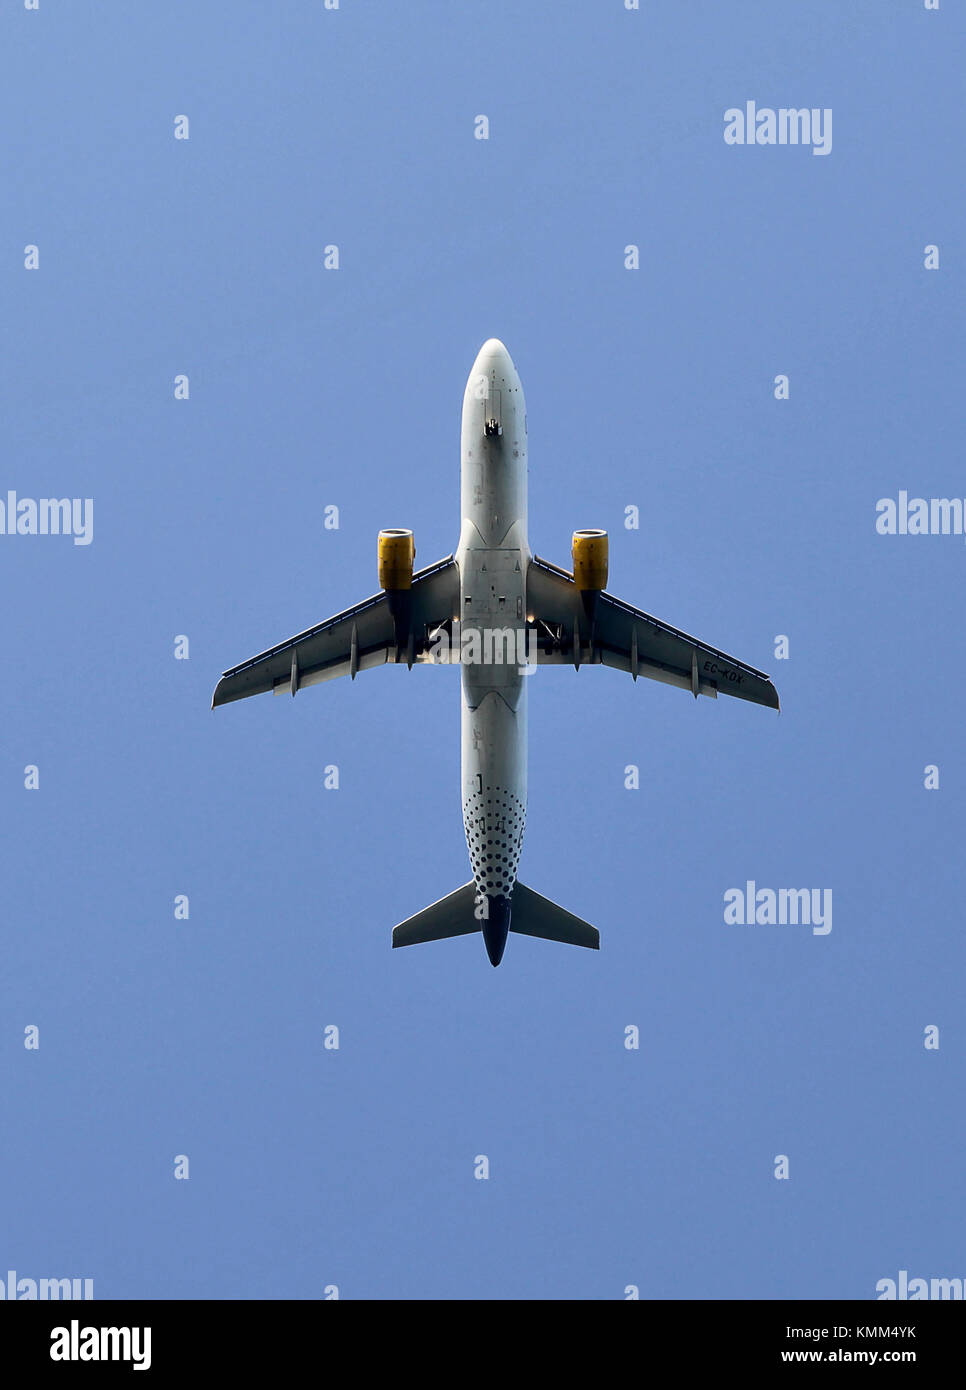 Underneath of an Vueling aeroplane in flight, after take off, Barcelona, Spain - Stock Image